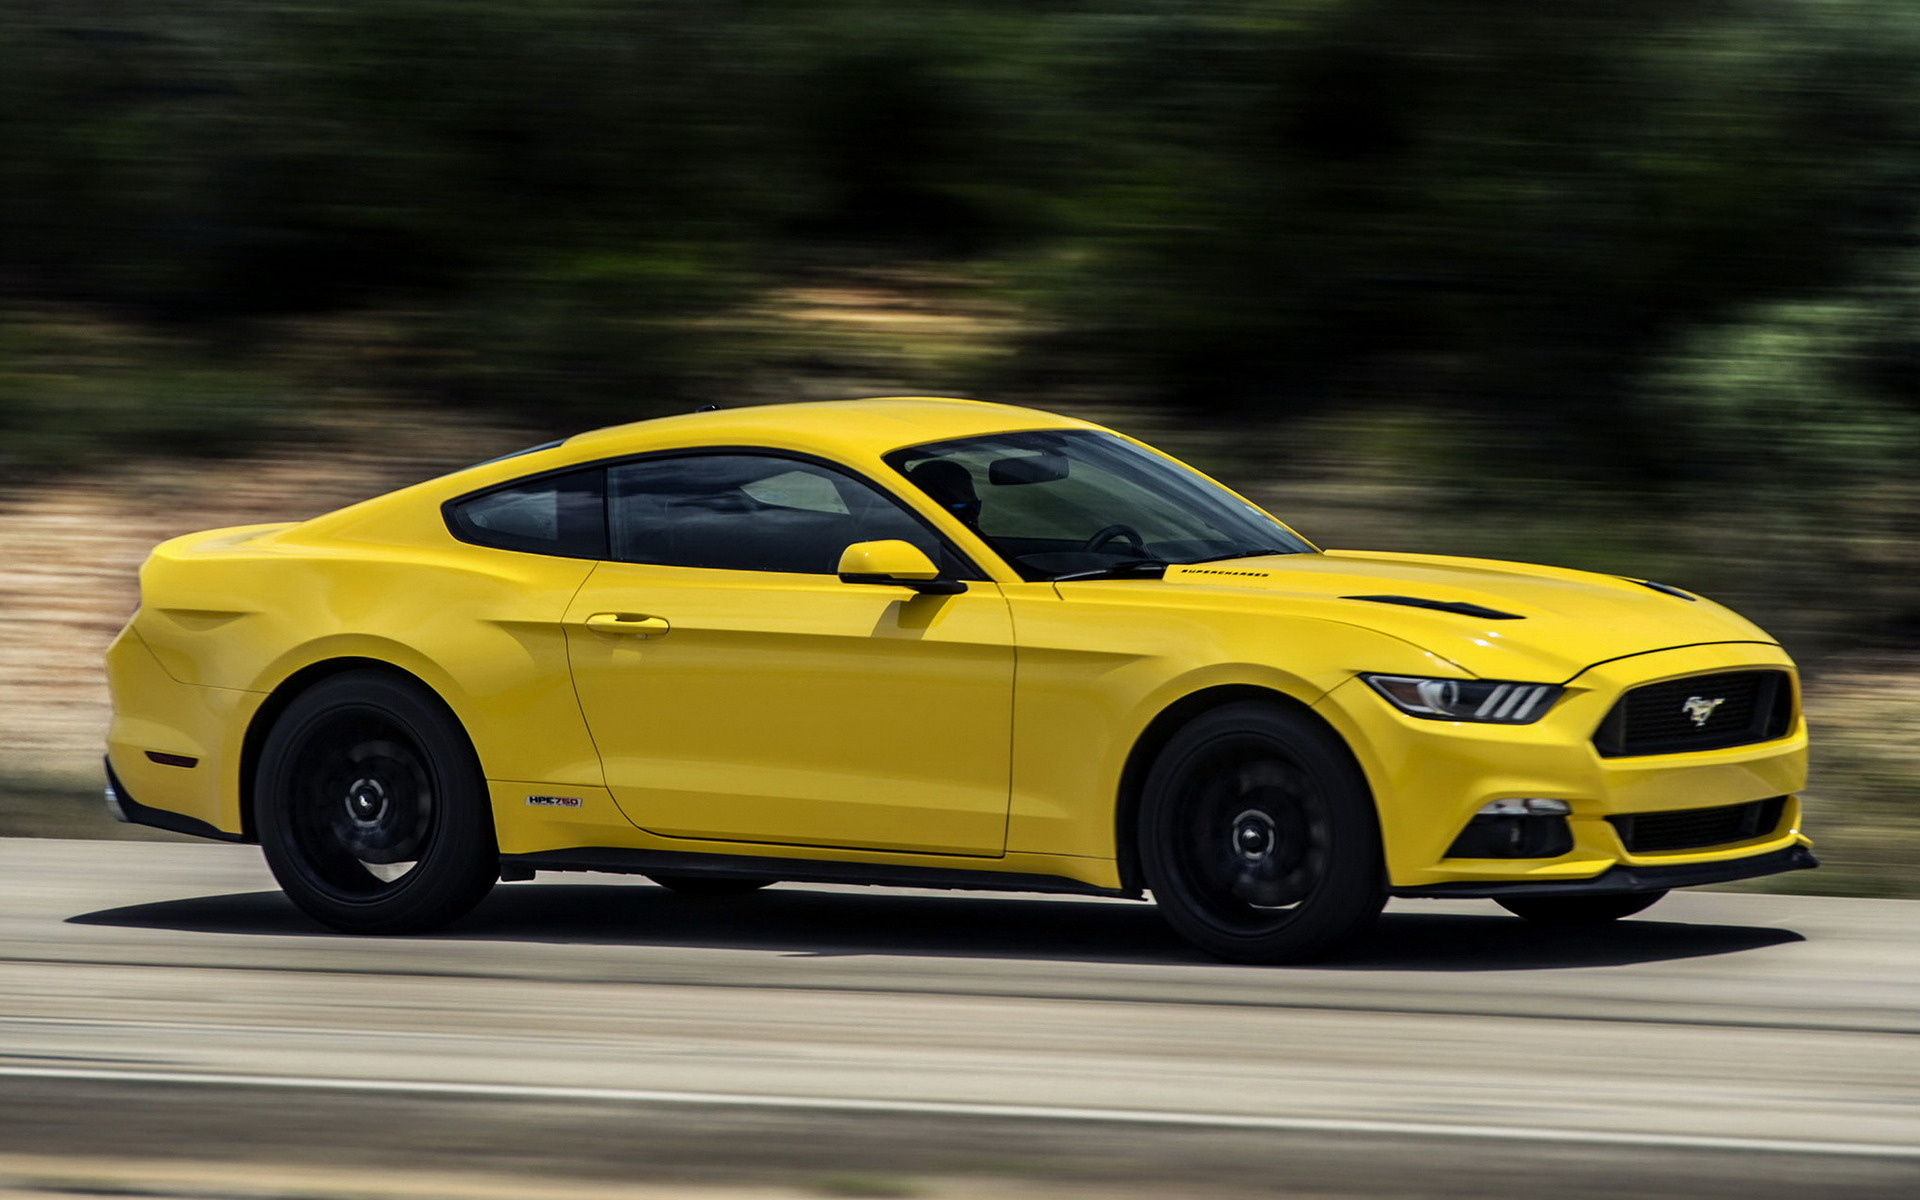 2015 Hennessey Mustang Gt Hpe750 Supercharged Wallpapers